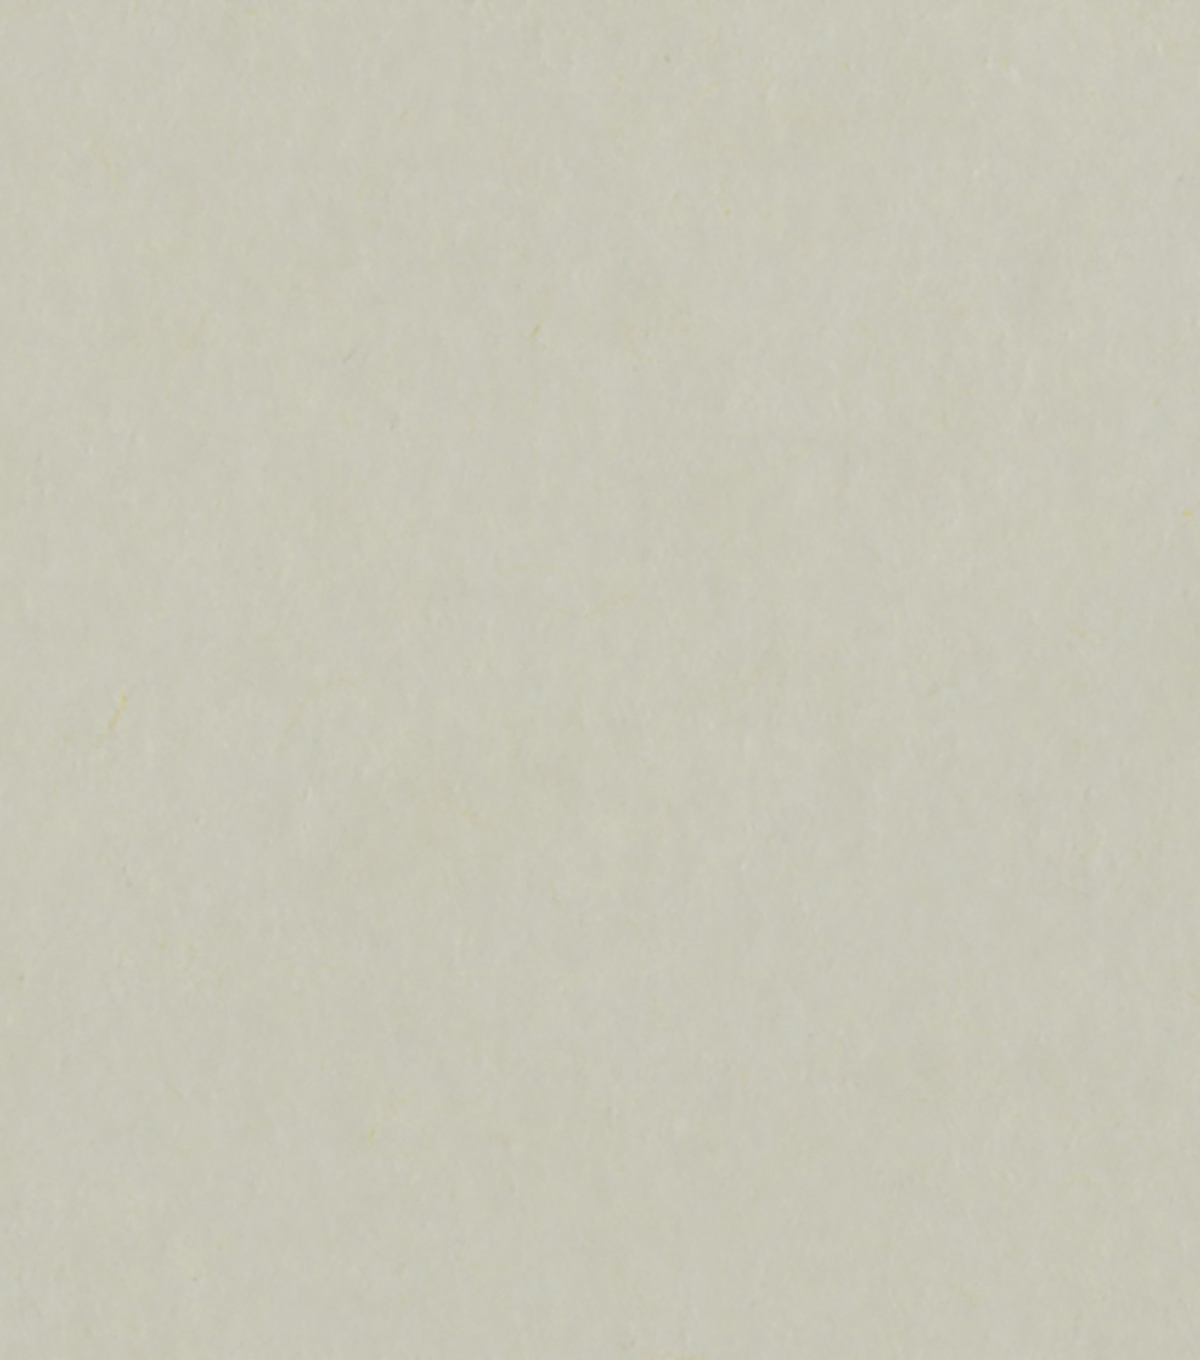 Bazzill Card Shoppe Heavyweight Cardstock Paper 12\u0027\u0027 x 12\u0027\u0027, Taffy